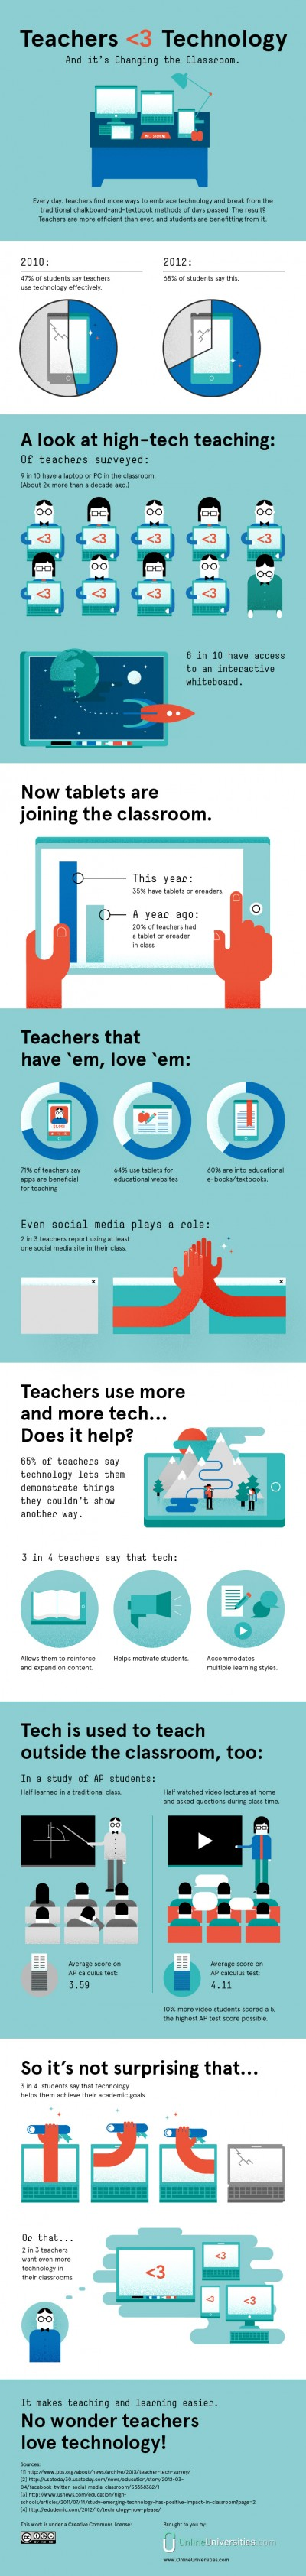 teachers love tech infographic